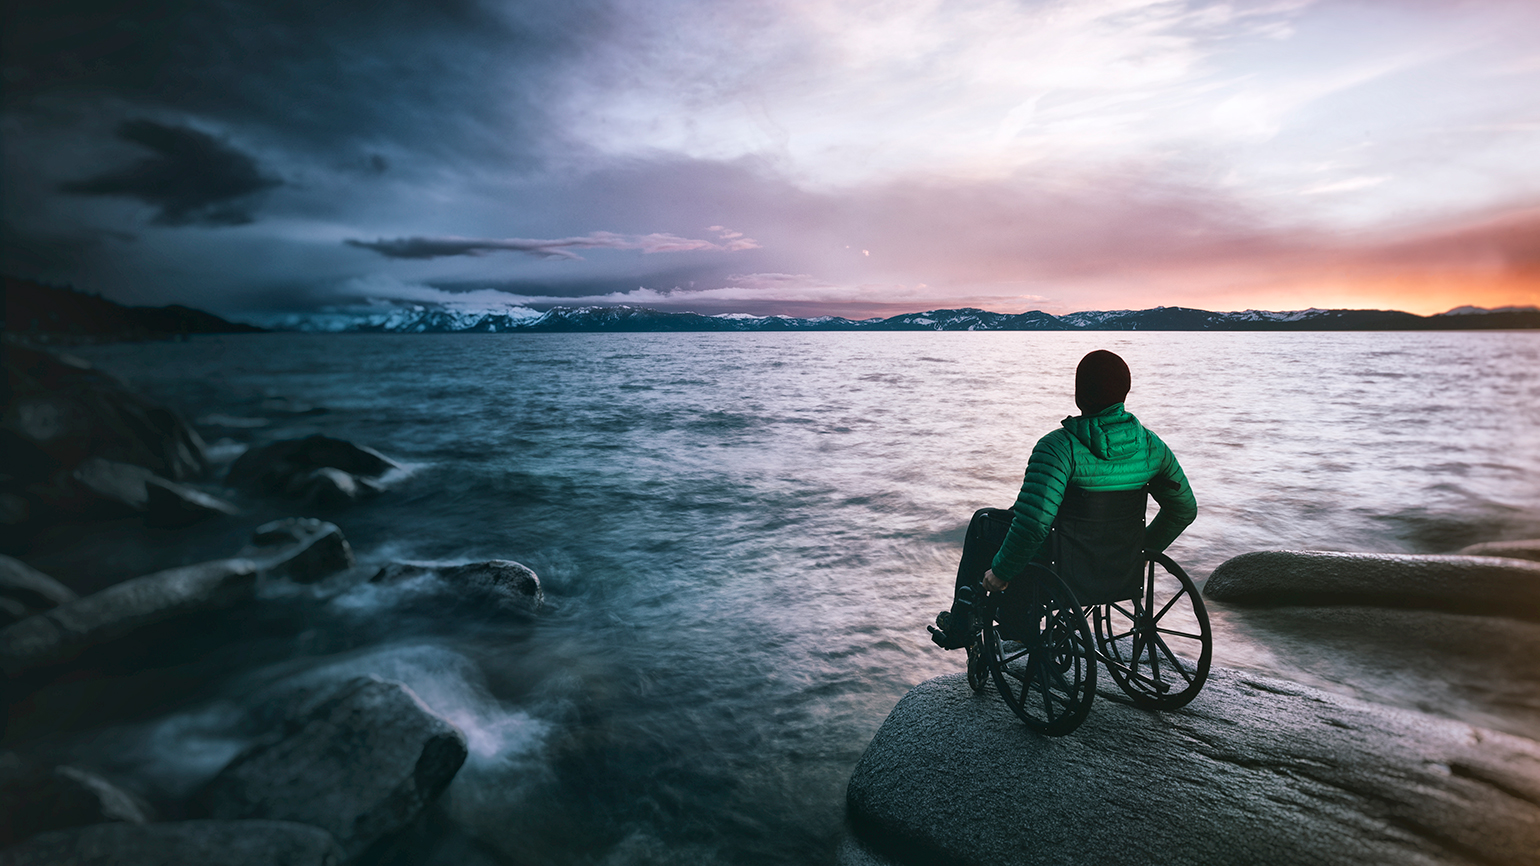 A man in a wheelchair looks out at the ocean from a rocky beach